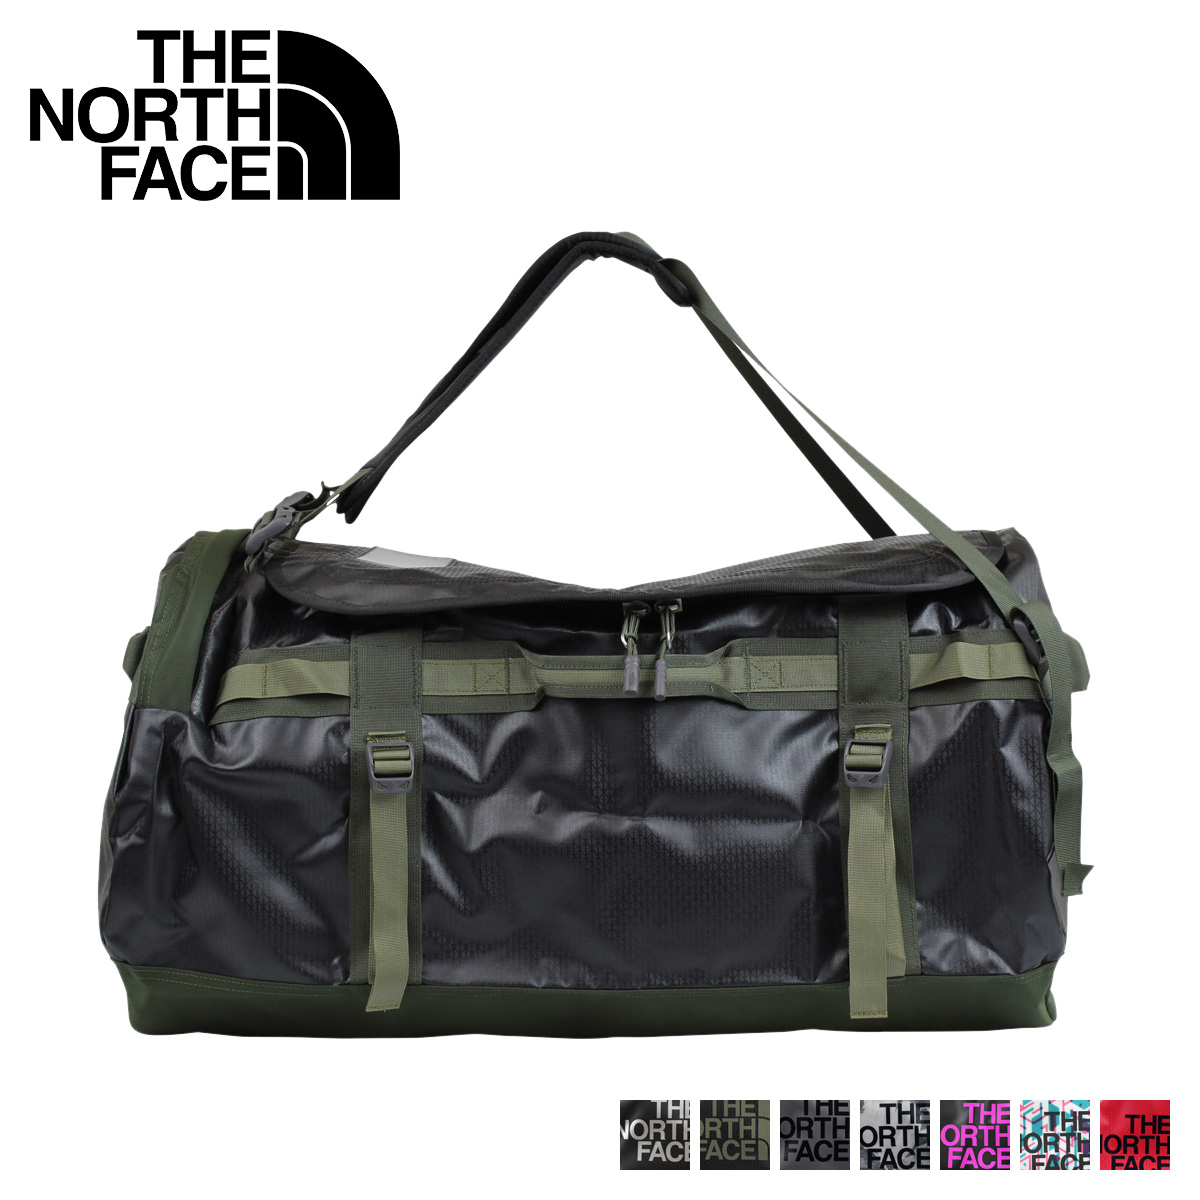 «Soon» «10 7 days stock» north face THE NORTH FACE mens Womens duffle bags  bag CWW1 95L 7 color BASE CAMP DUFFEL-L  10 7 new in stock  a065feff19b21